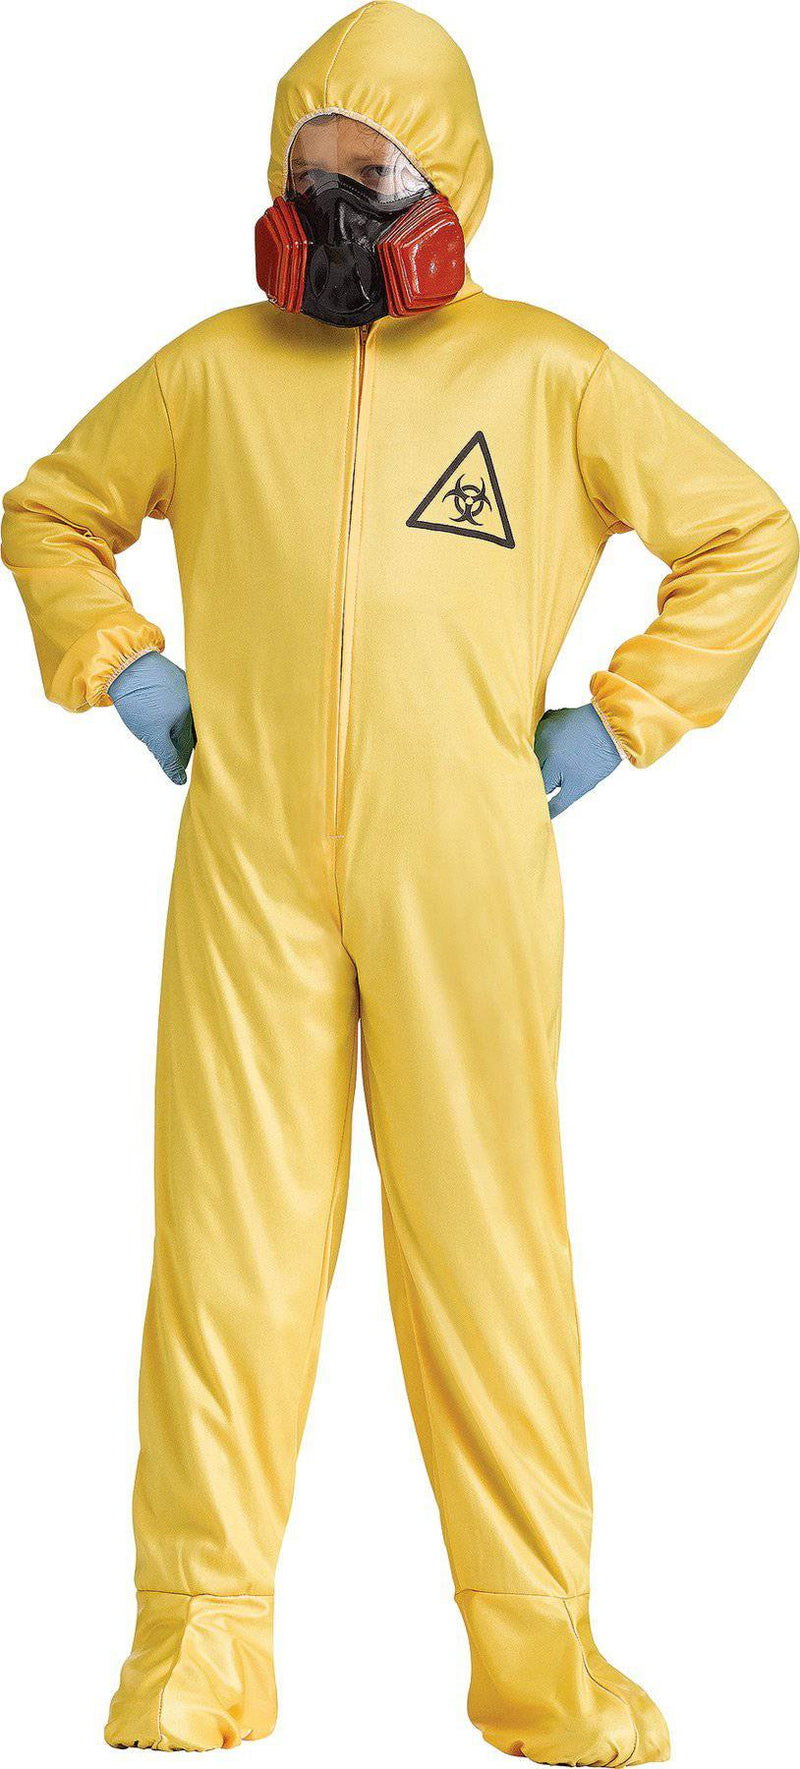 Fun World Child Hazmat Suit Hooded Party Fancy Costume - Costume Arena